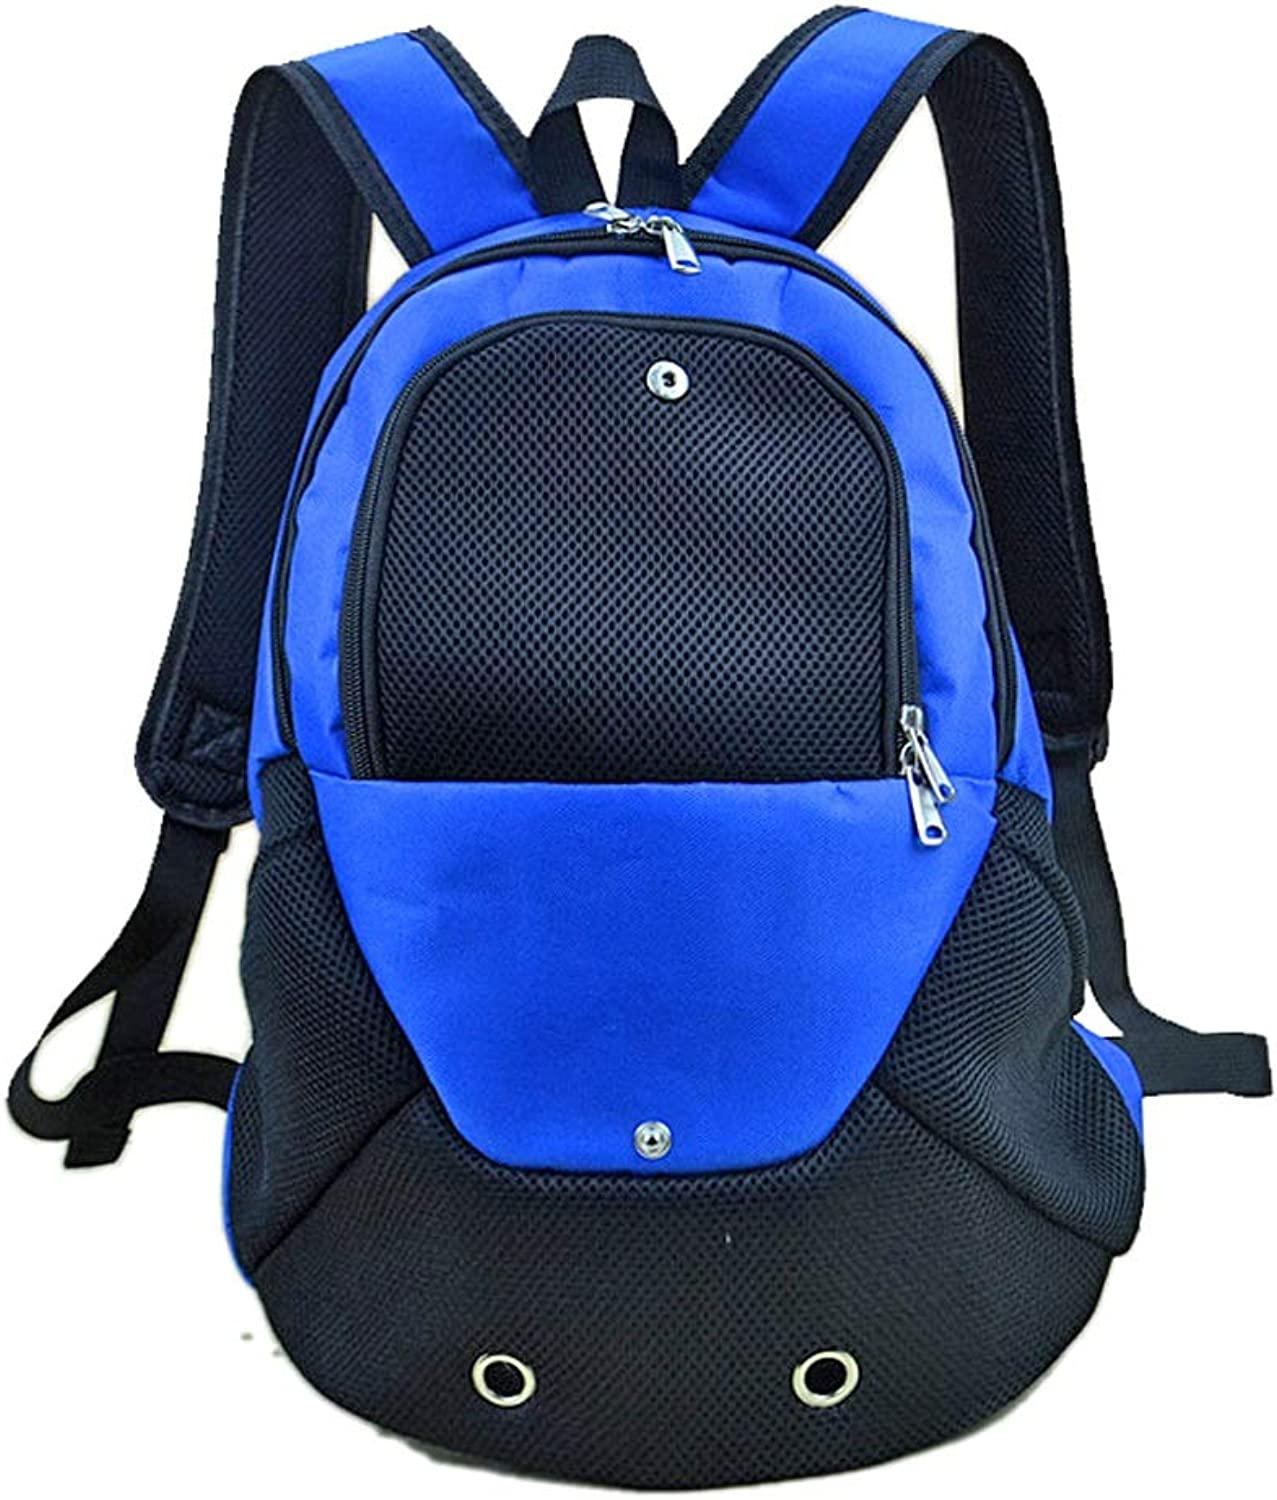 Comfortable Pet Travel Bag Folding Pets Kitten Cat Carriers Bags,Suitable for Puppy, Small Dogs, and Cats for Outdoor Travel (color   bluee)